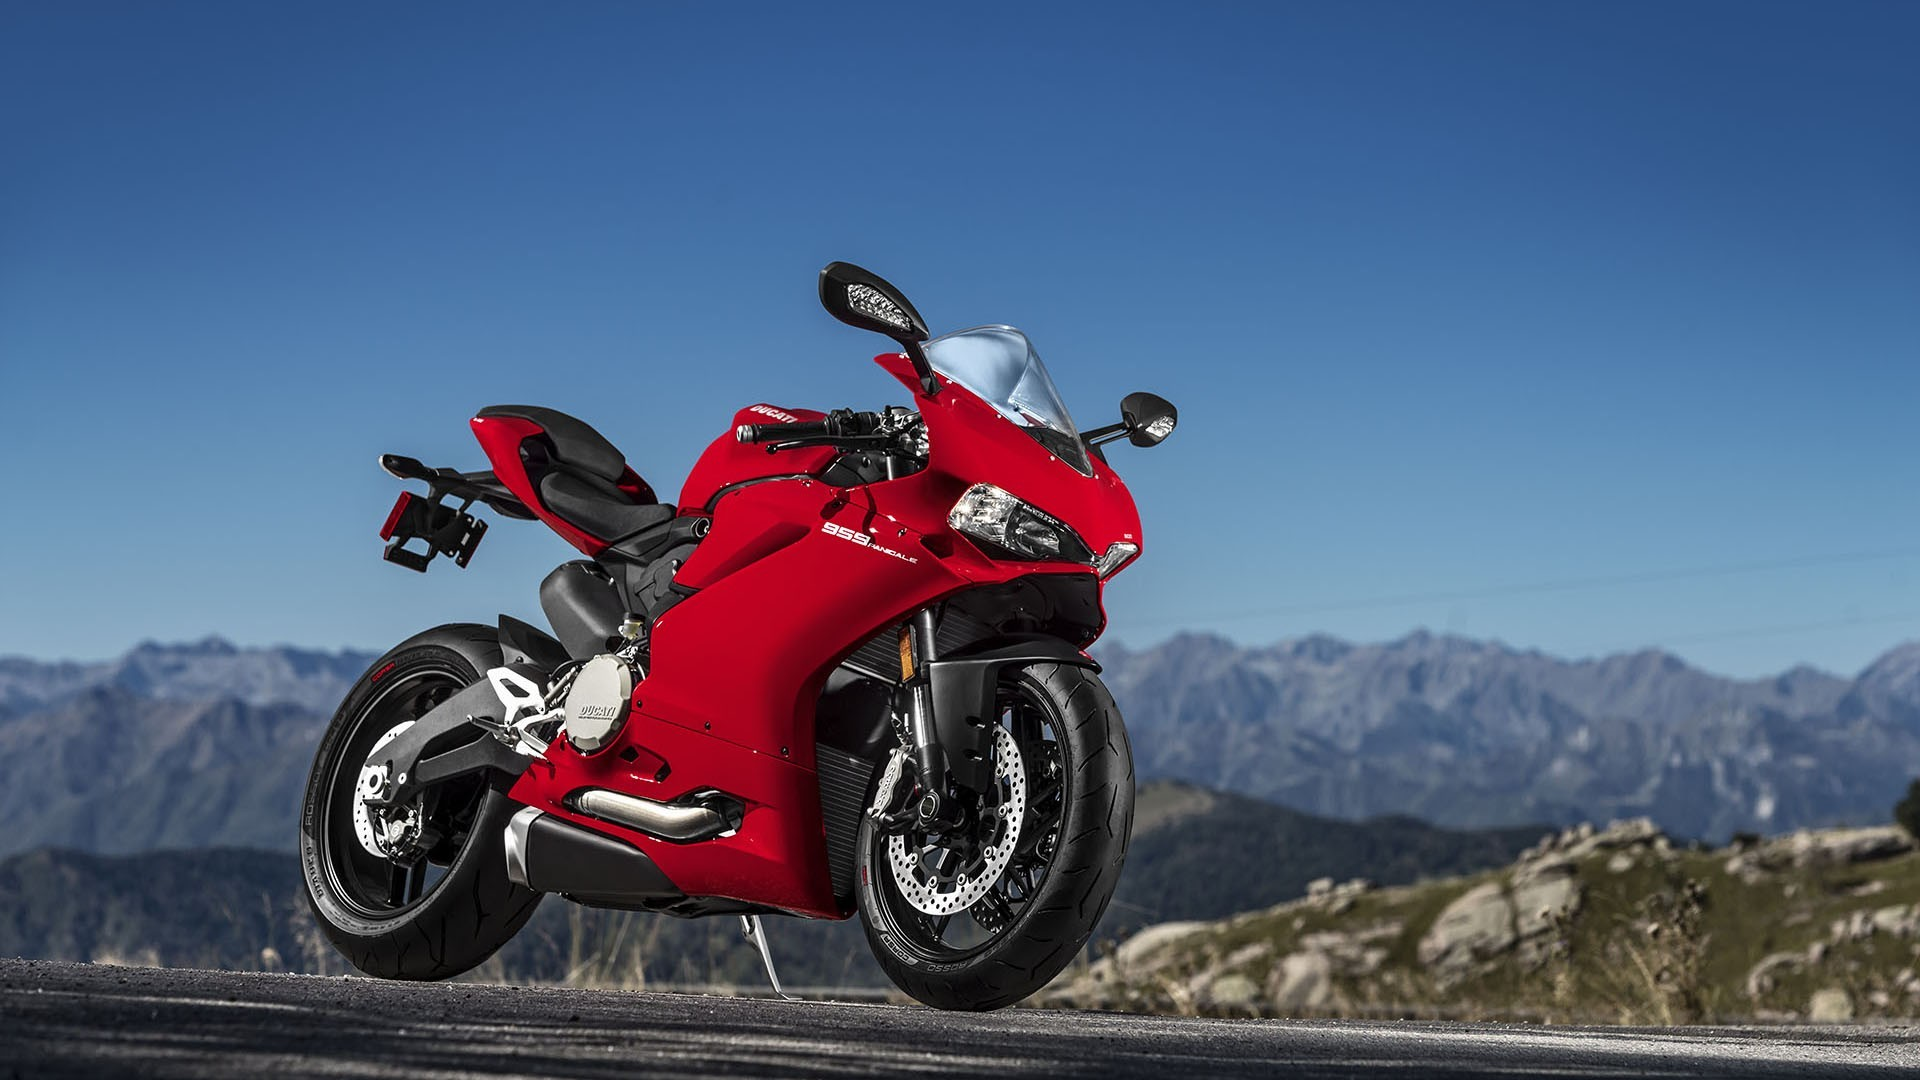 Unique Ducati Panigale V4S Motorcycles to Sell on eBay After